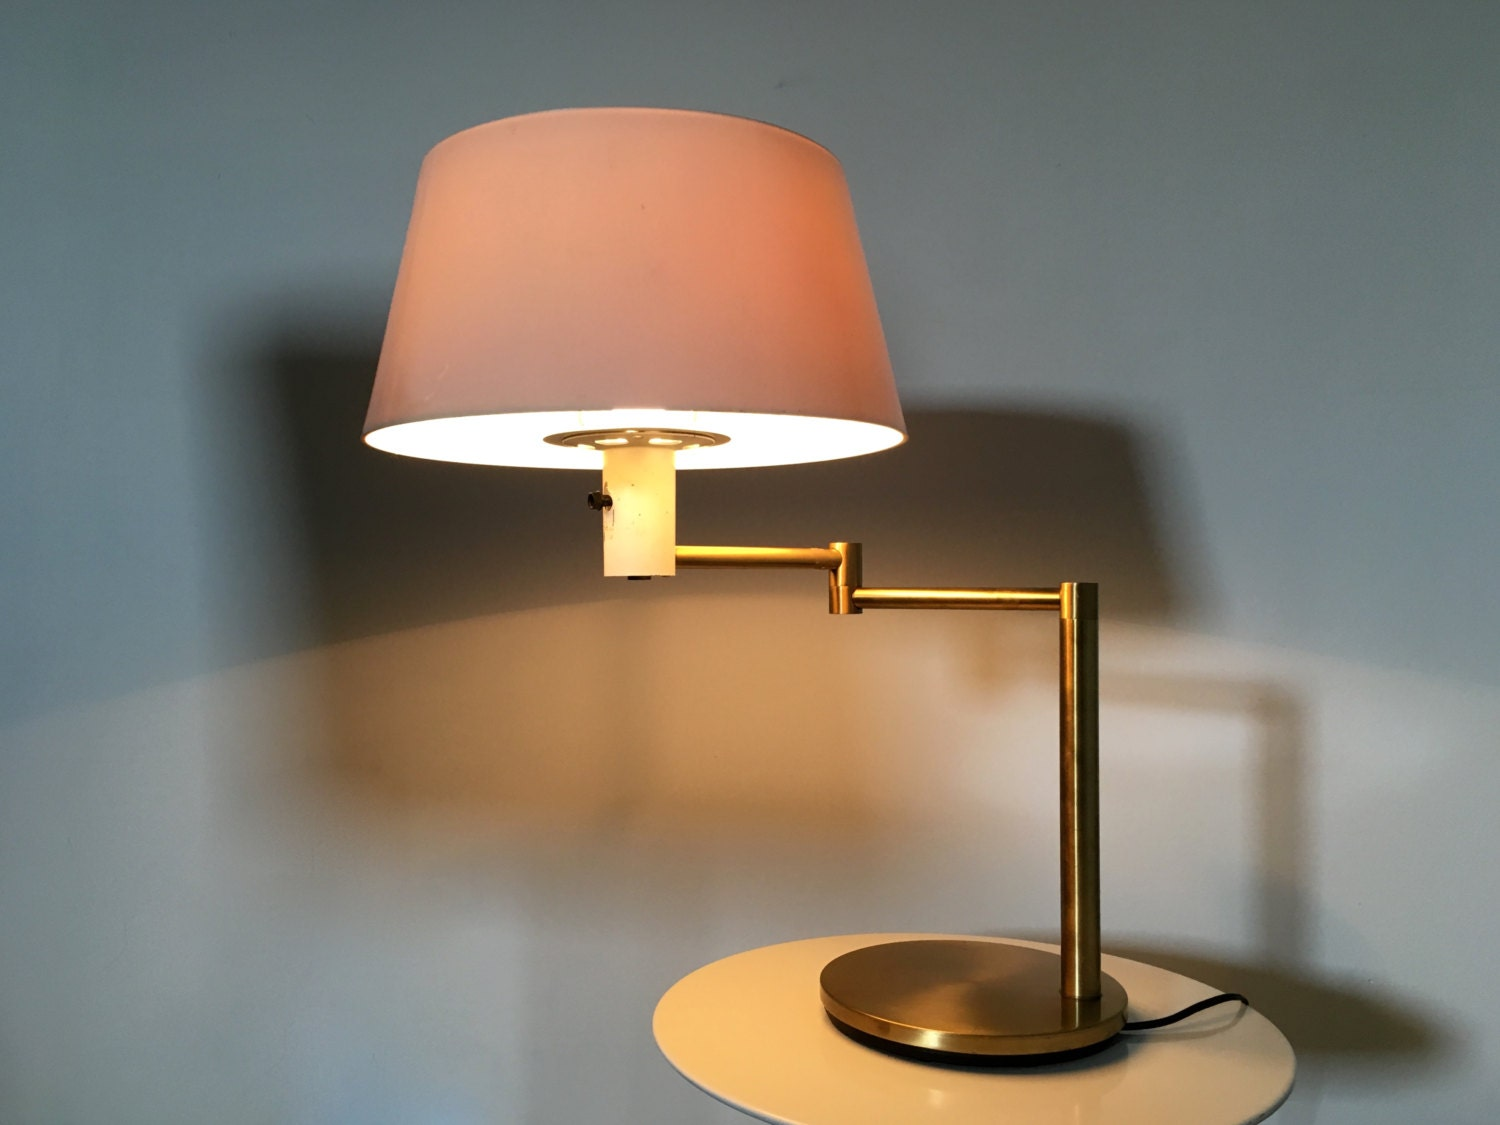 rare vintage gerald thurston for lightolier mid century modern brass swing arm table desk lamp. Black Bedroom Furniture Sets. Home Design Ideas